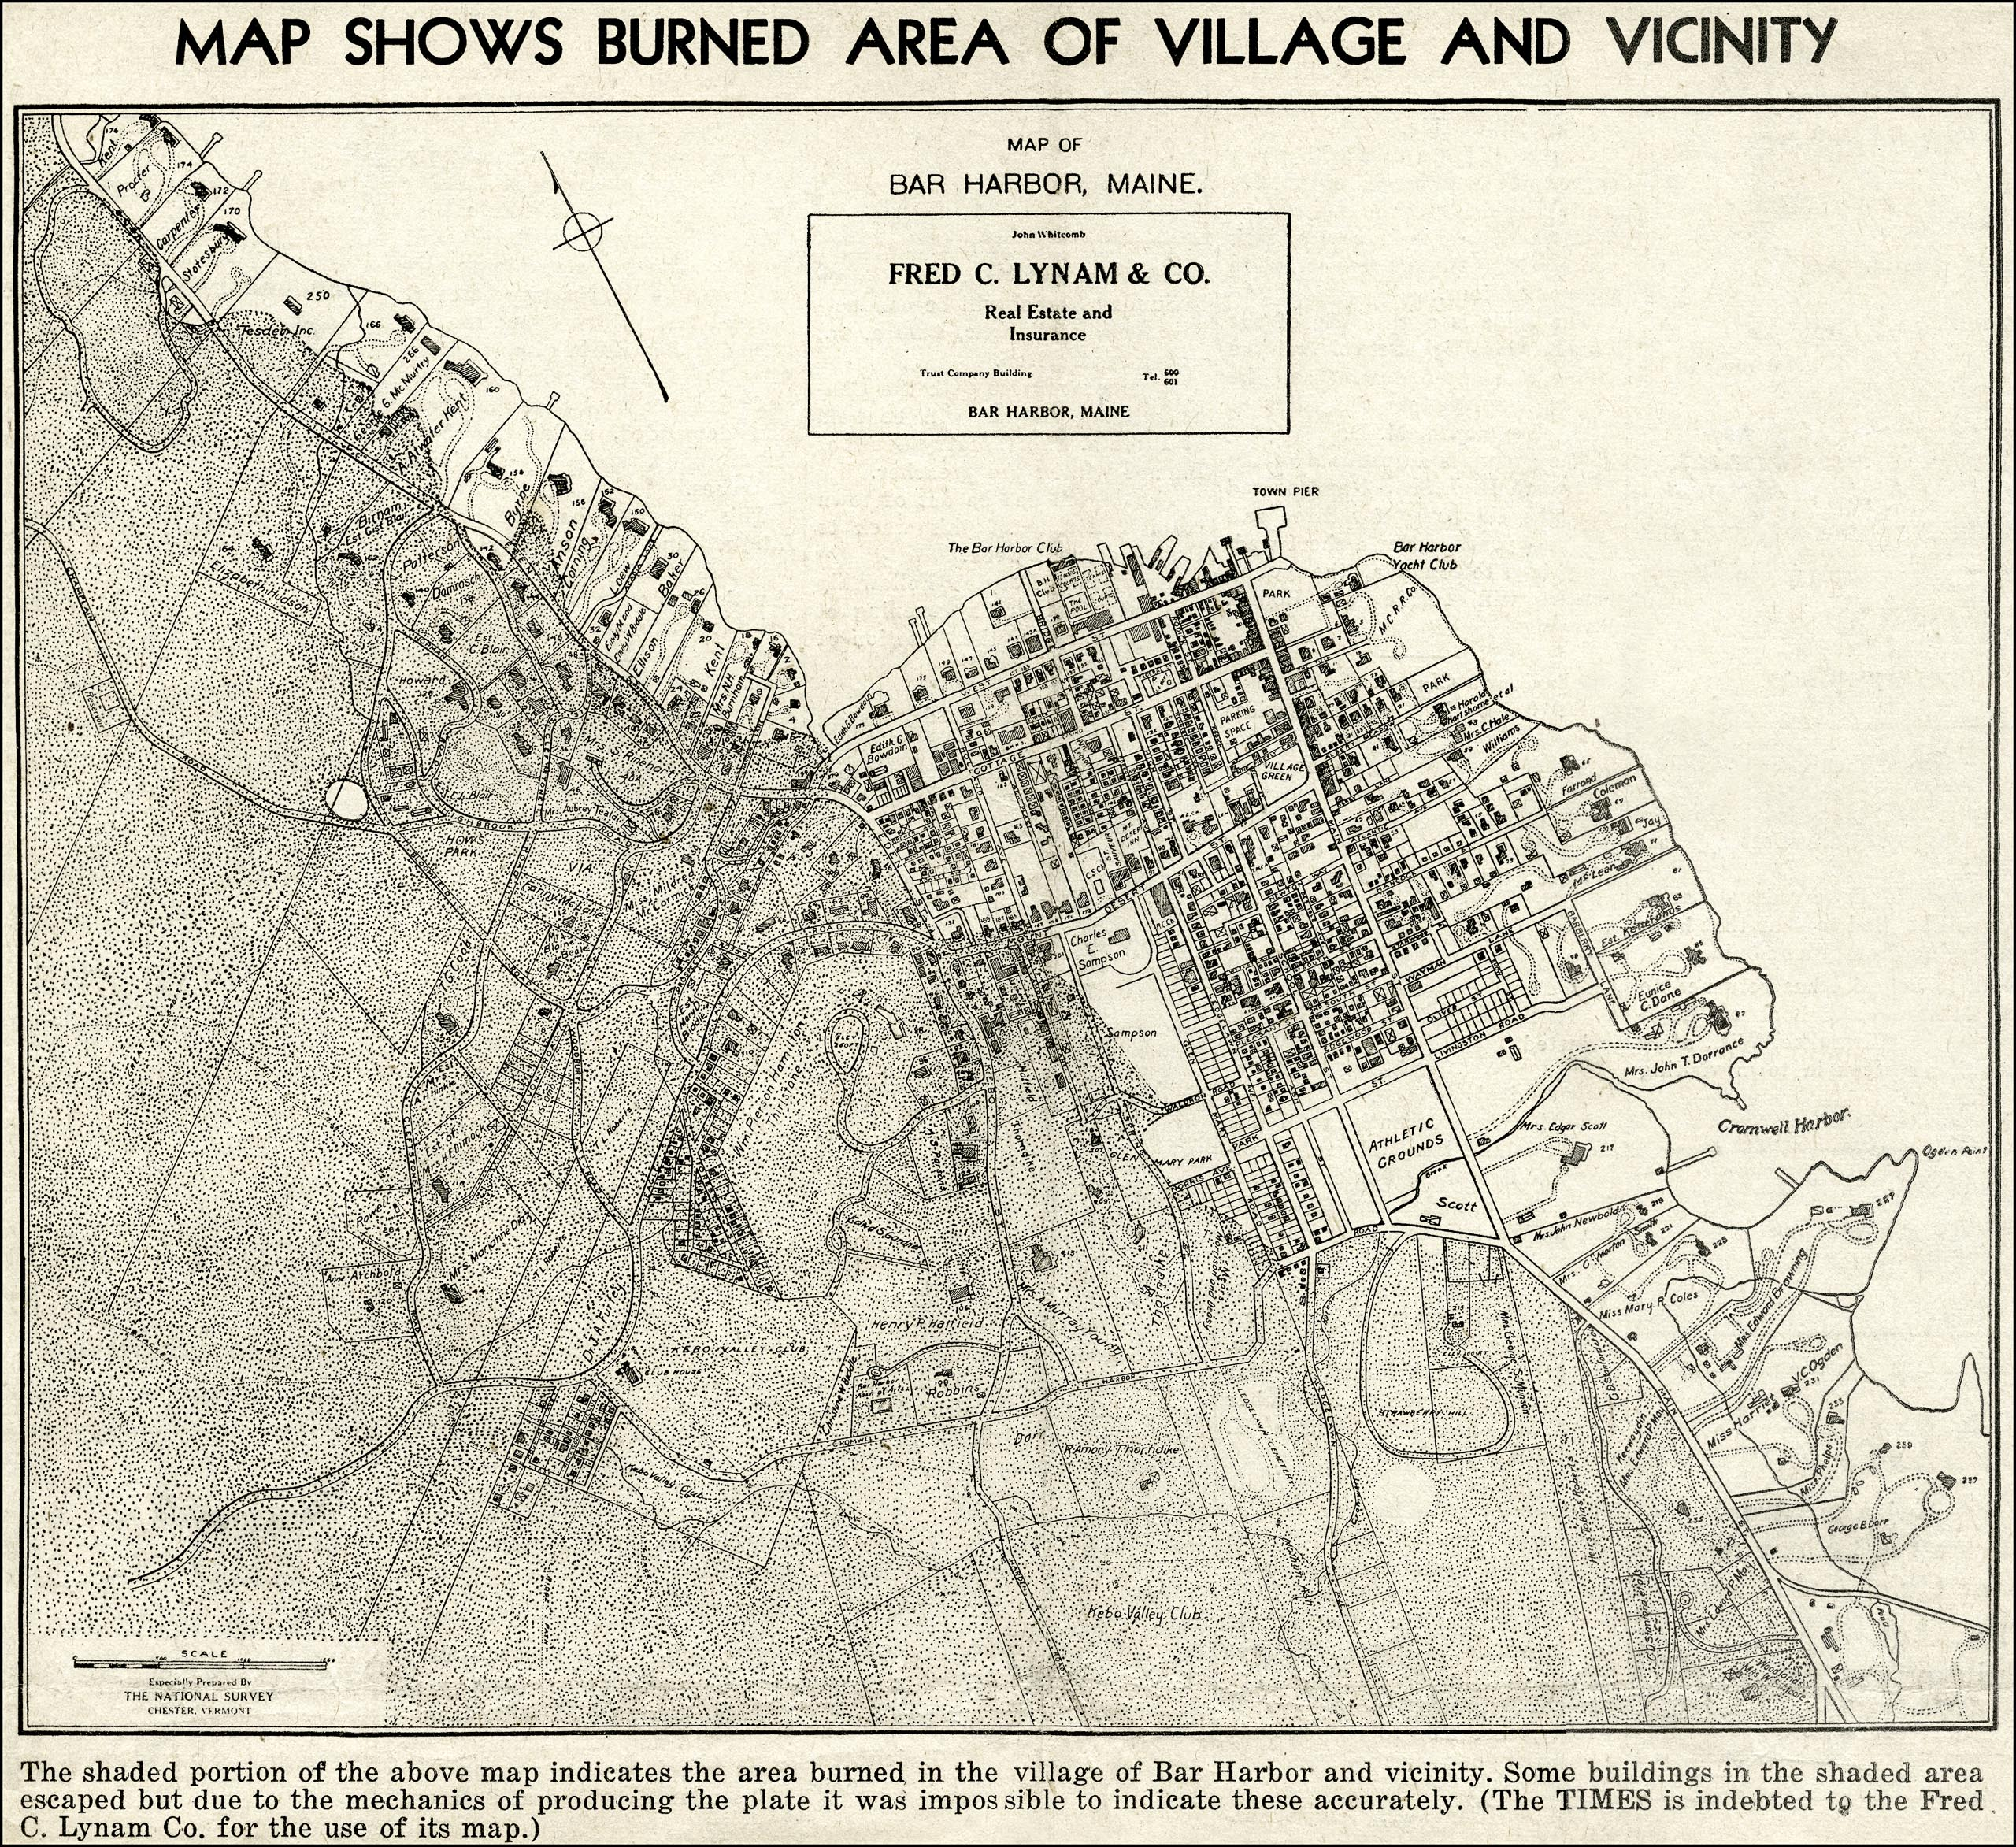 1947 Map of Areas Burned by Bar Harbor Fire